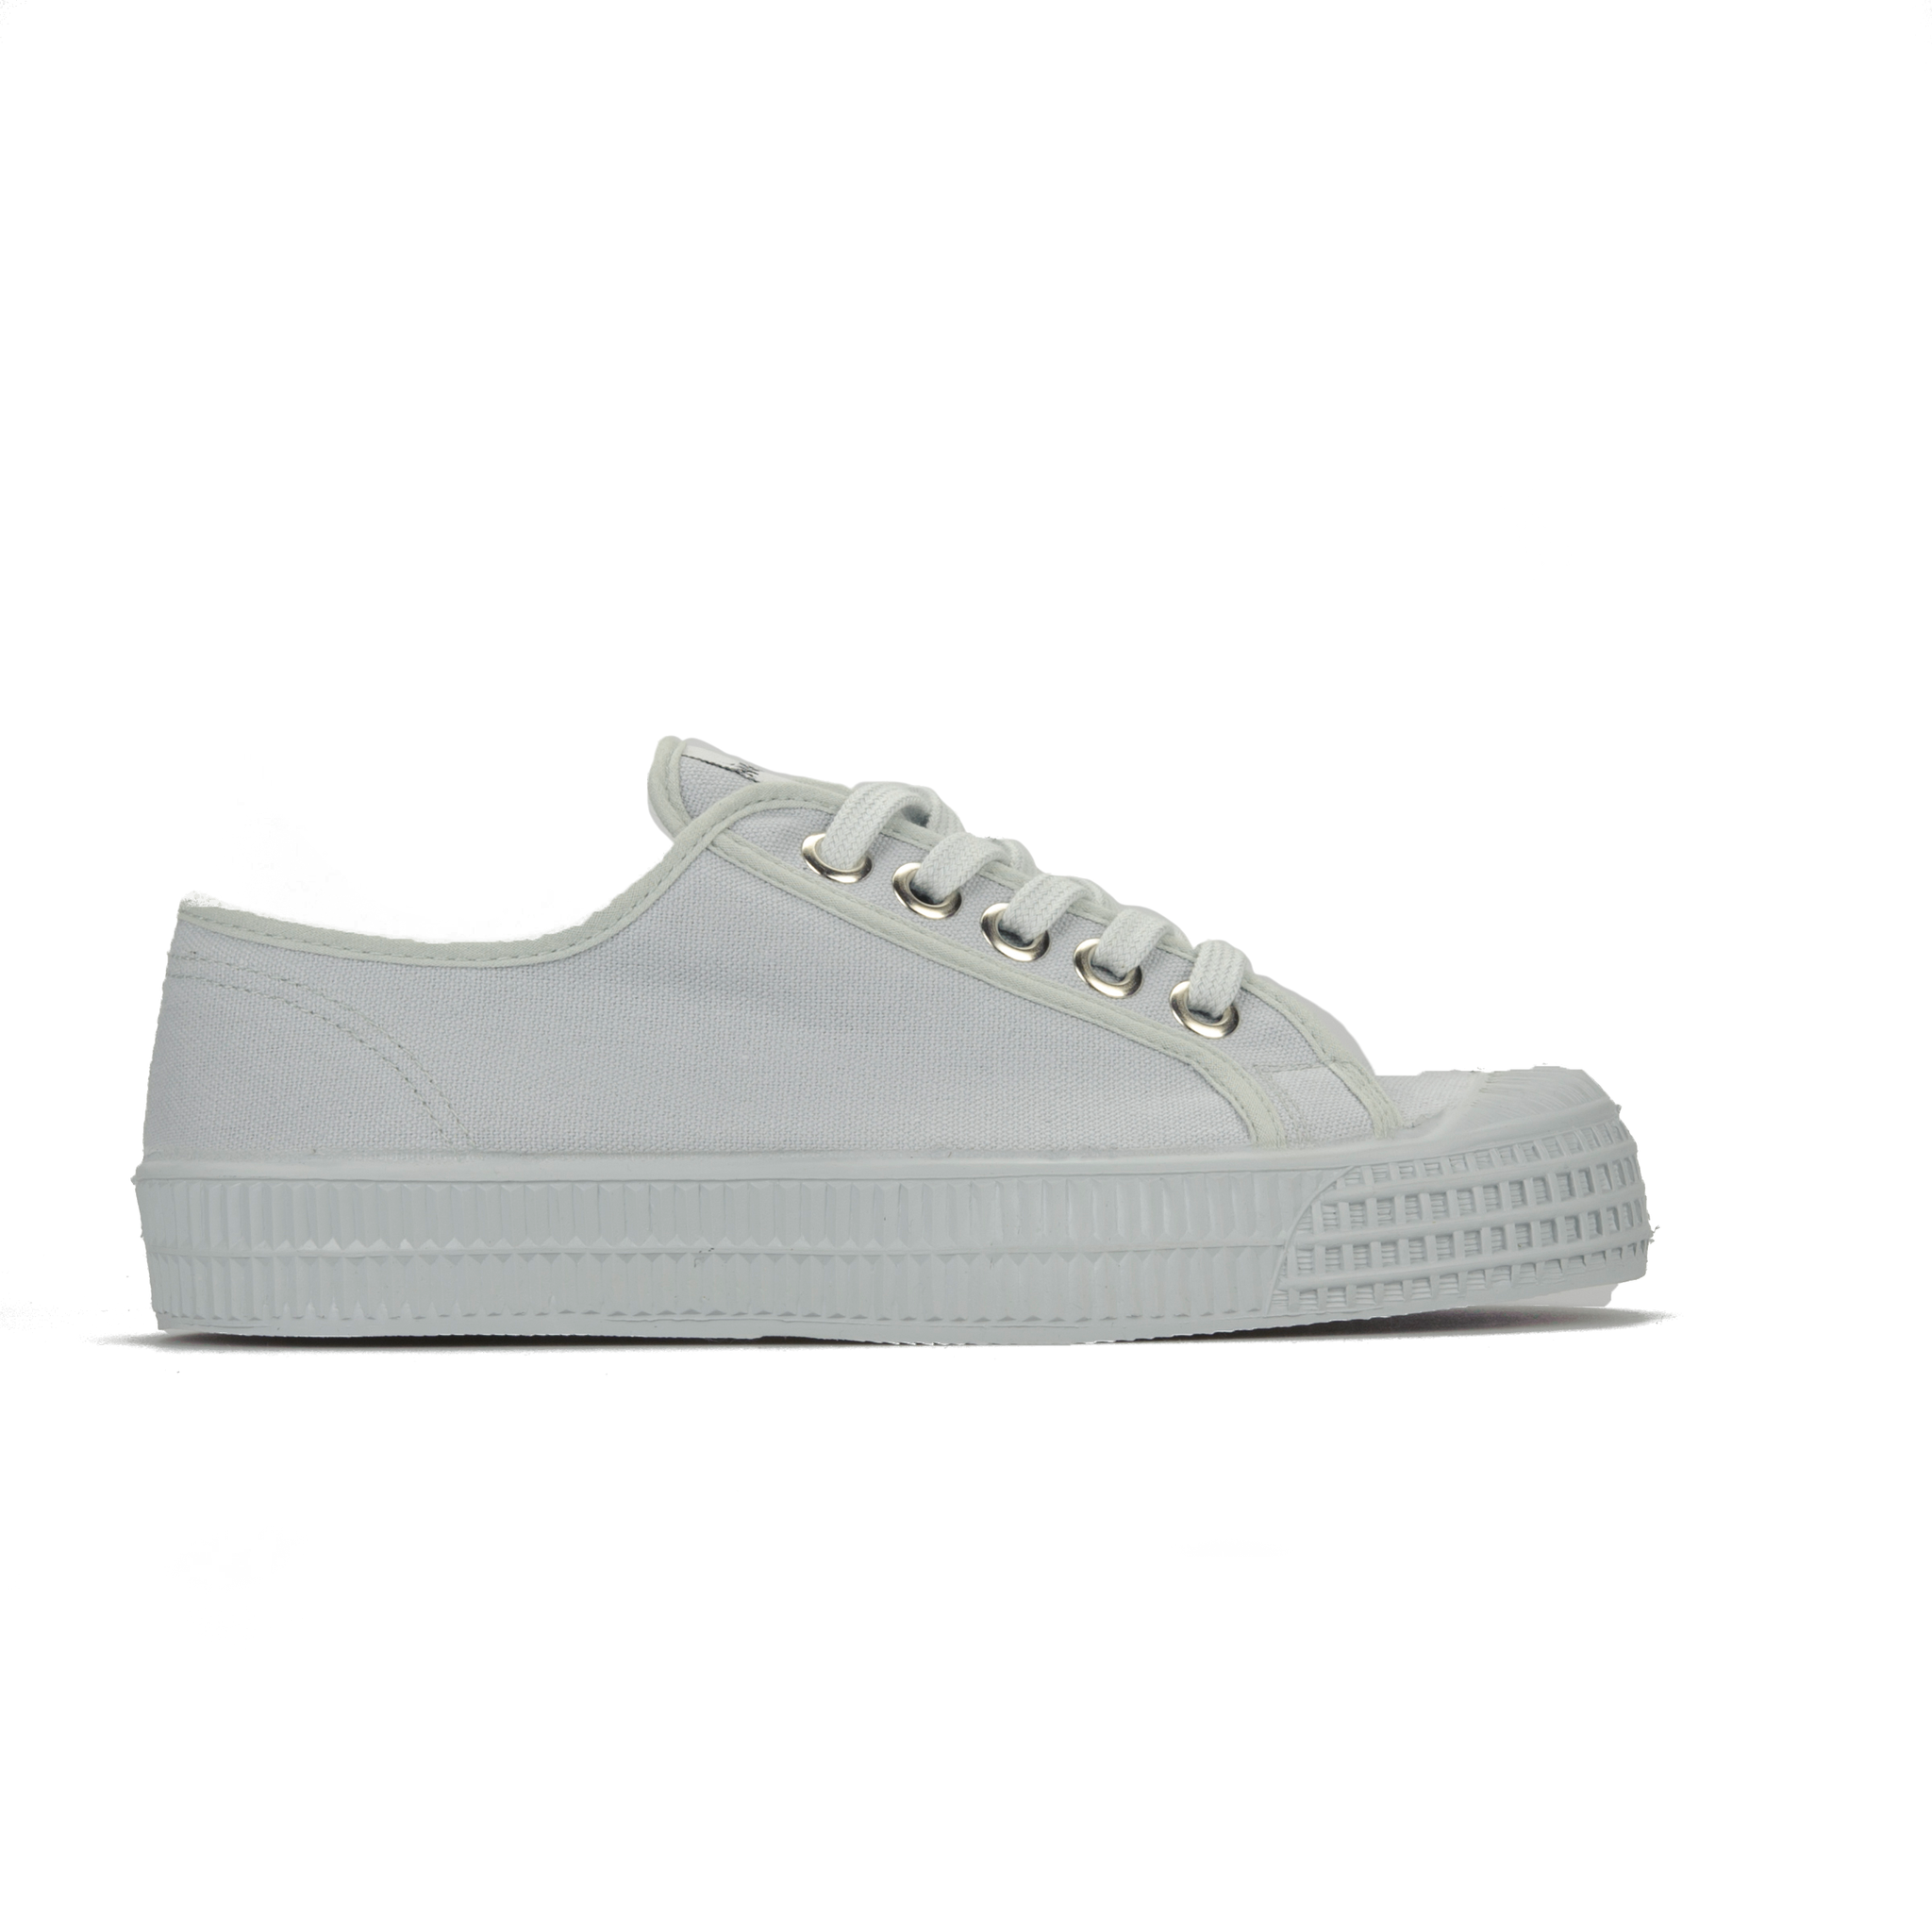 Novesta Star Master Low Top Sneaker - Mono Grey - Unisex - Partisan, Parkhurst, Johannesburg - side view